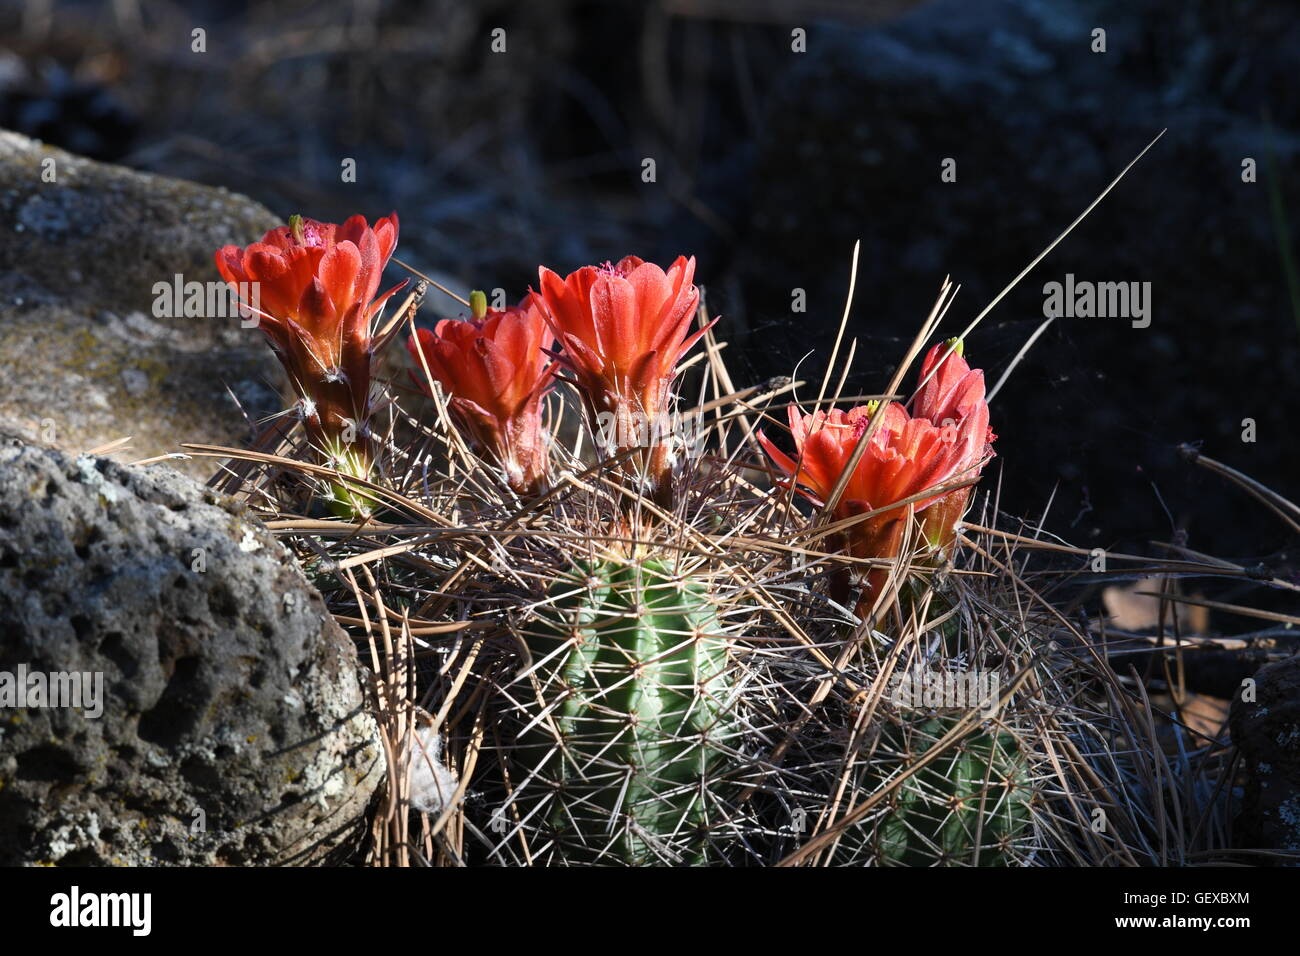 Green hedgehog cactus flowering red flowers in pine forest. - Stock Image